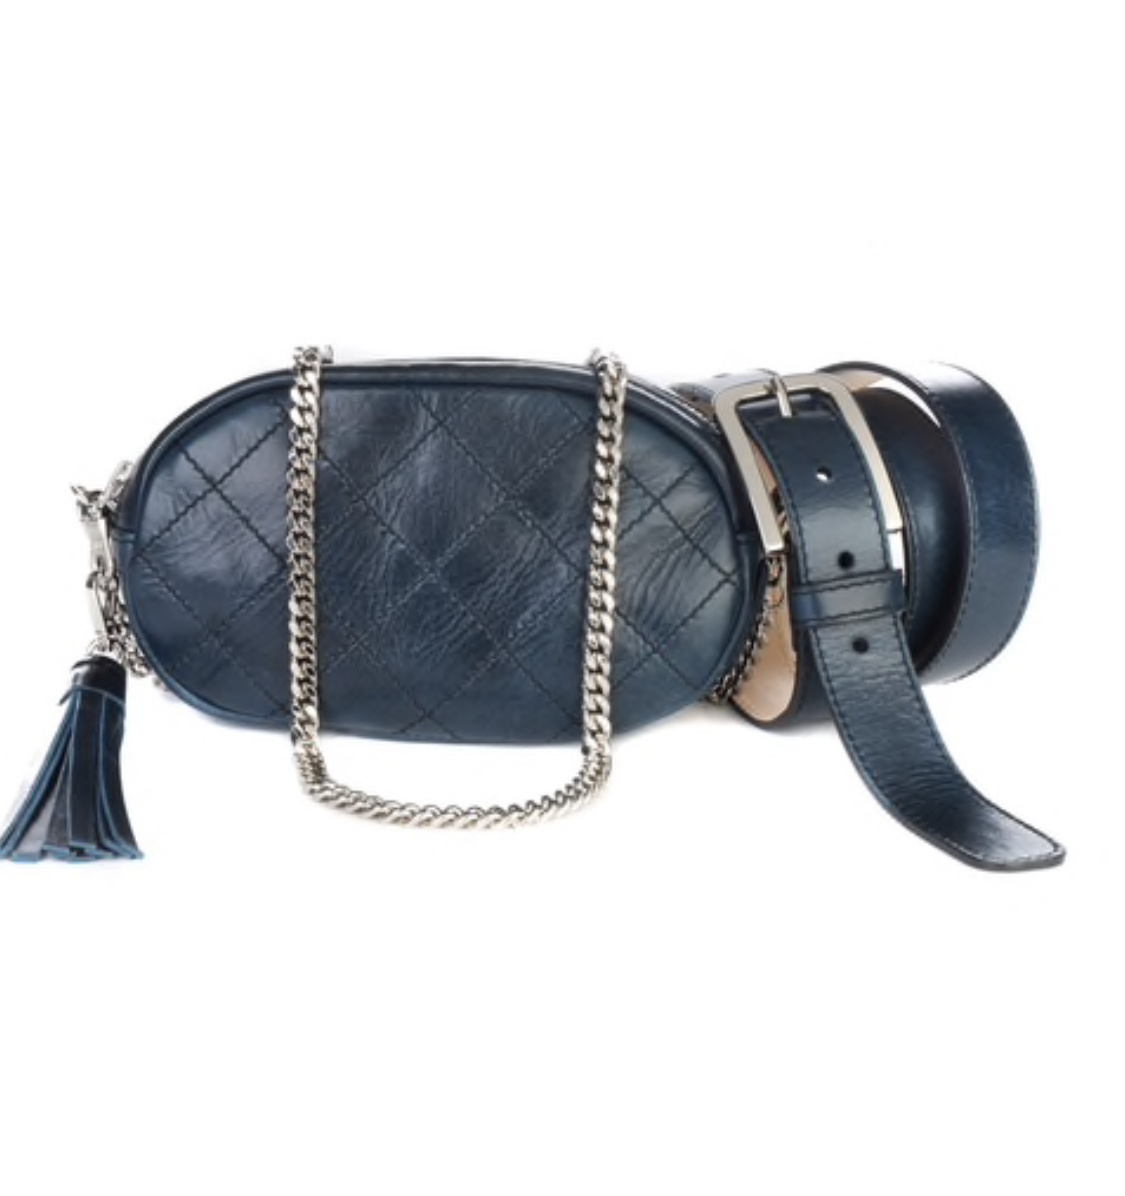 Brave Leather Venice 3-In-1 Belt Bag